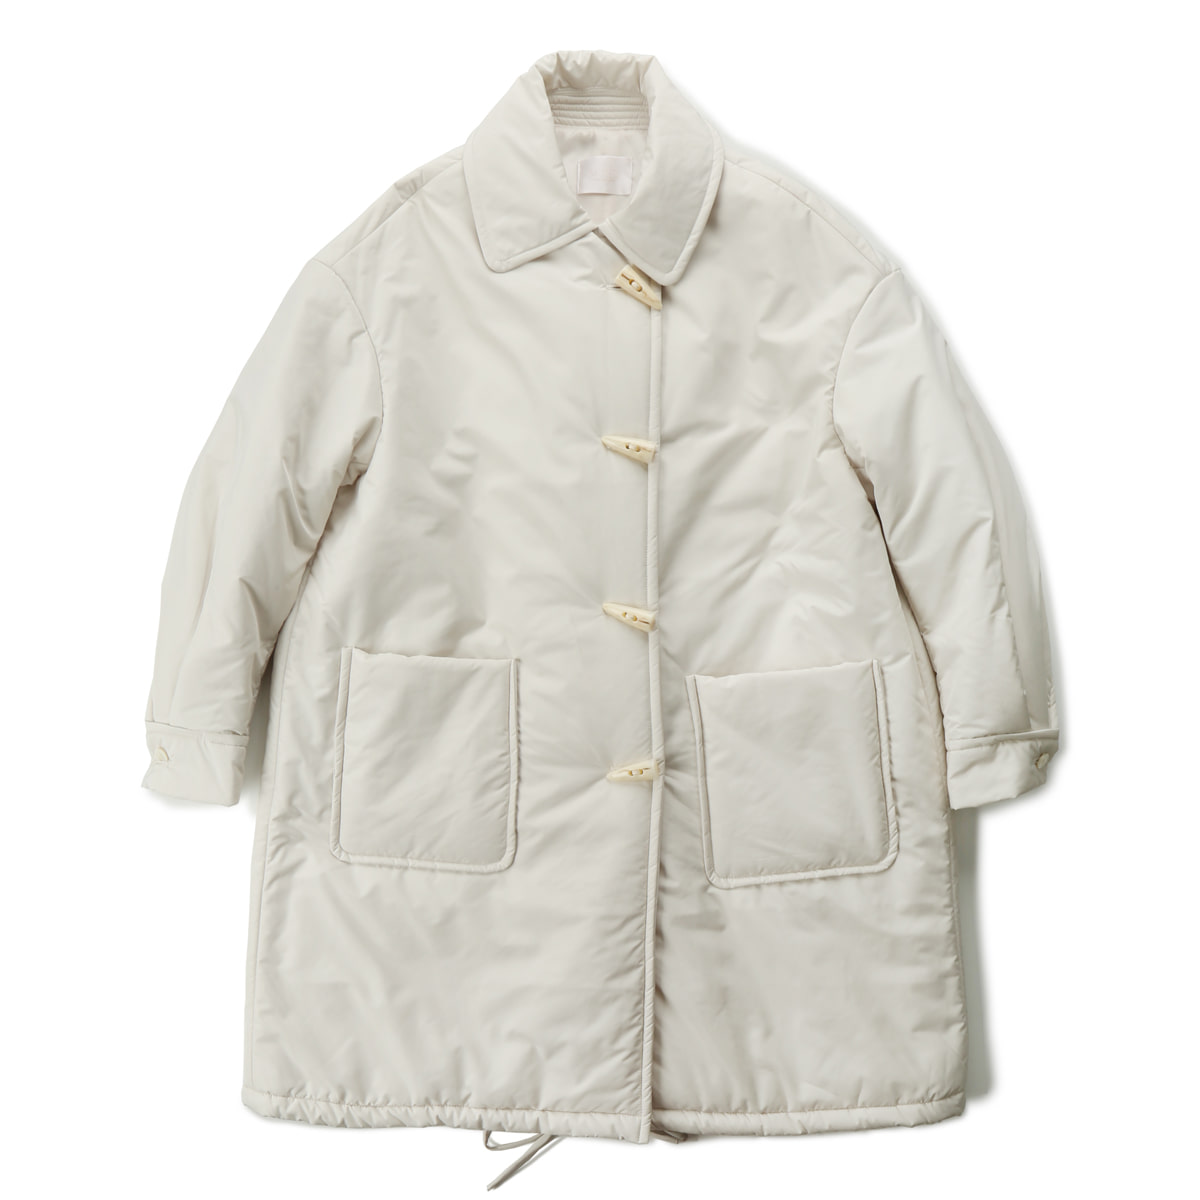 [MUSED] LAVE DE DUFFLE COAT 'IVORY QUILTING'